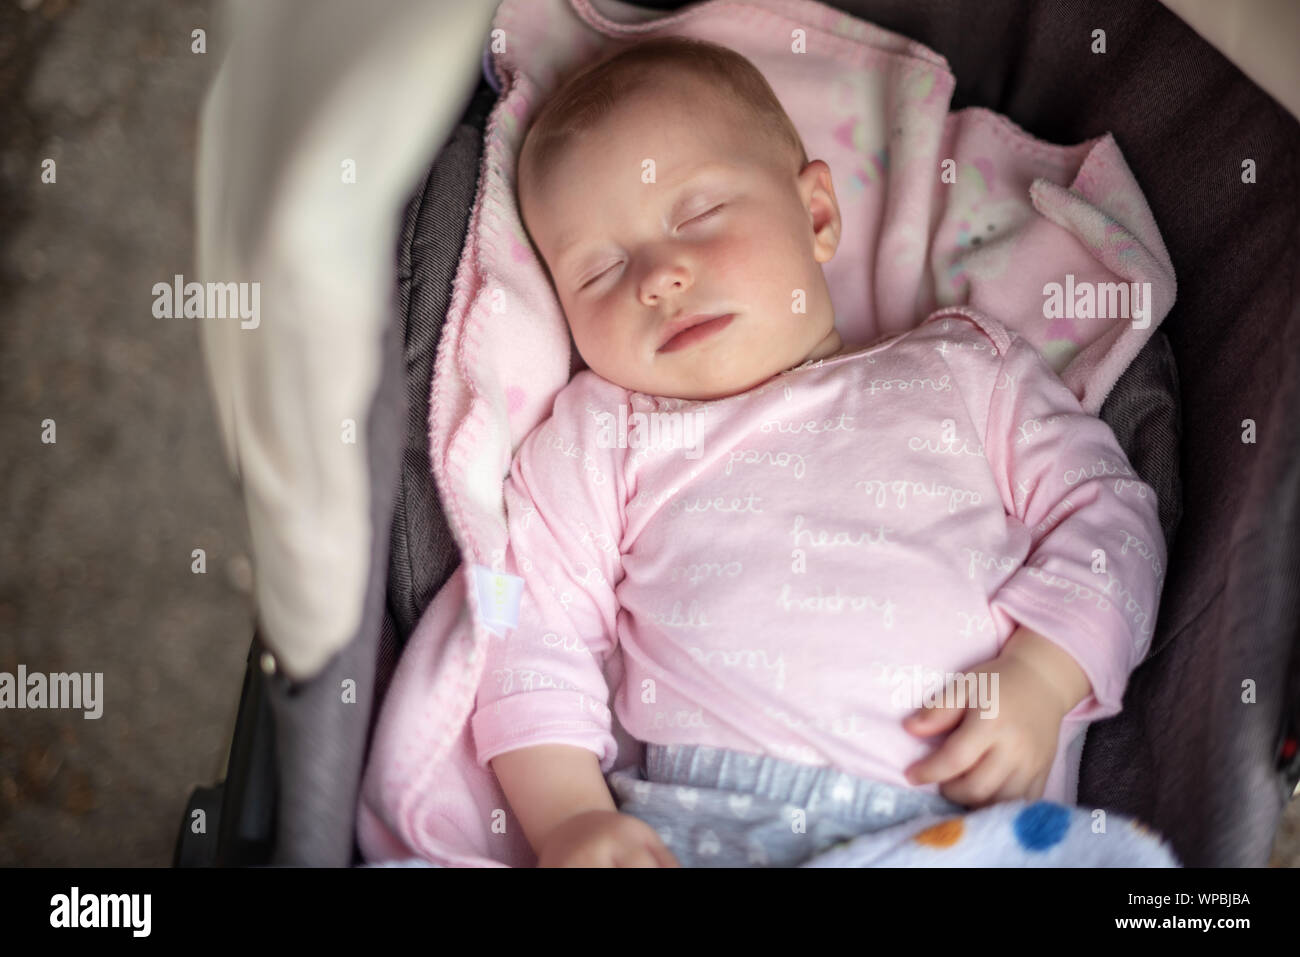 Baby sleeping in a baby carriage in the air. Stock Photo